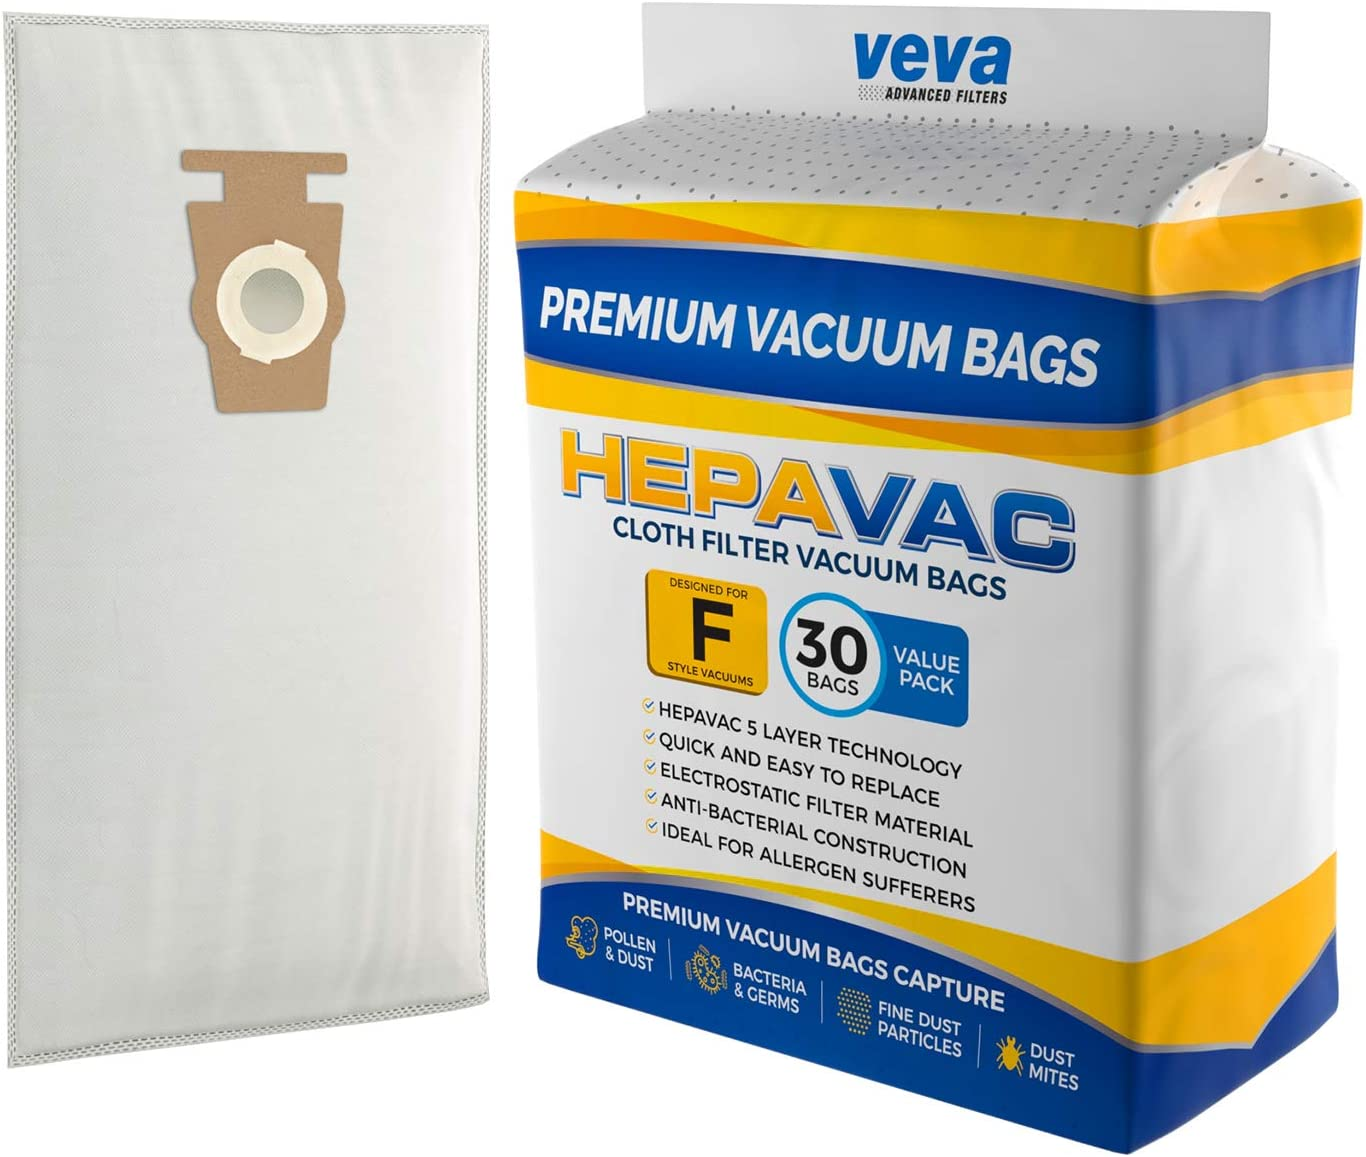 VEVA 30 Pack Premium HEPA Vacuum Bags Style F Cloth Bag Compatible with Kirby Replacement Type F, Q, 204808 204811 Avalir, Sentria I, II, G10D, Ultimate G, Diamond; G3, G4, G5, G6, G7 Cleaners -